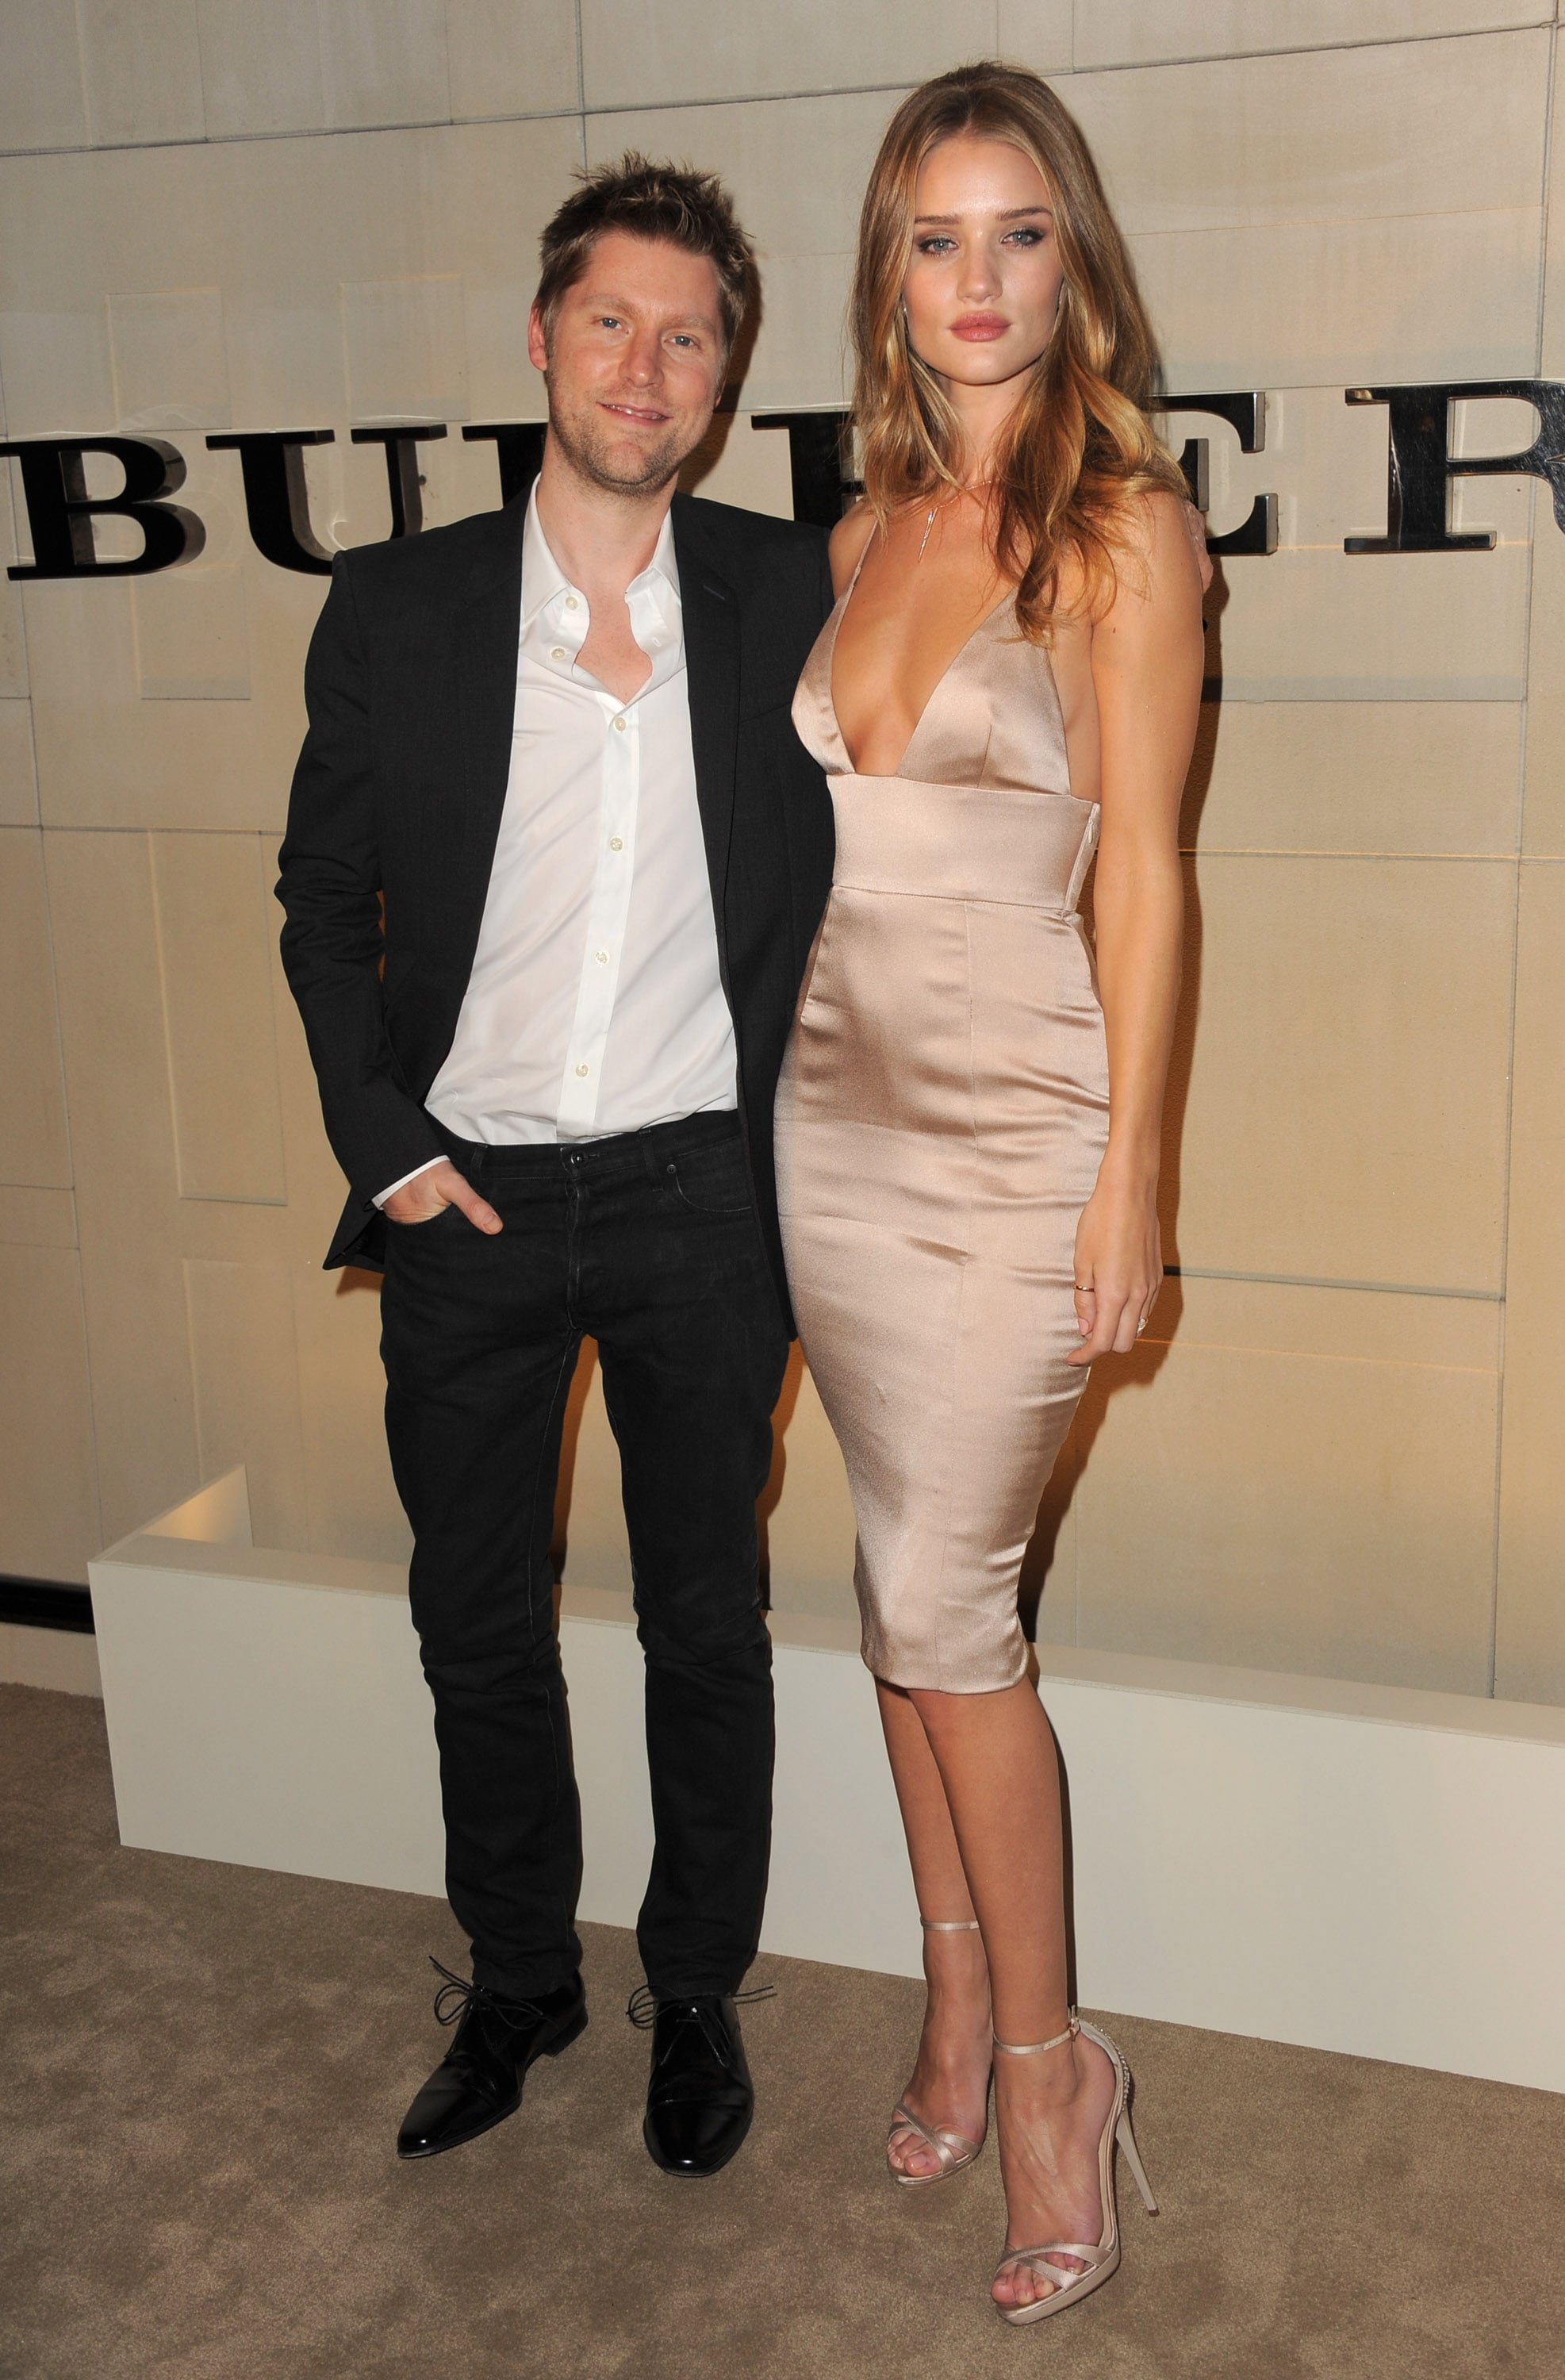 Burberry's Christopher Bailey with model Rosie Huntington-Whiteley.